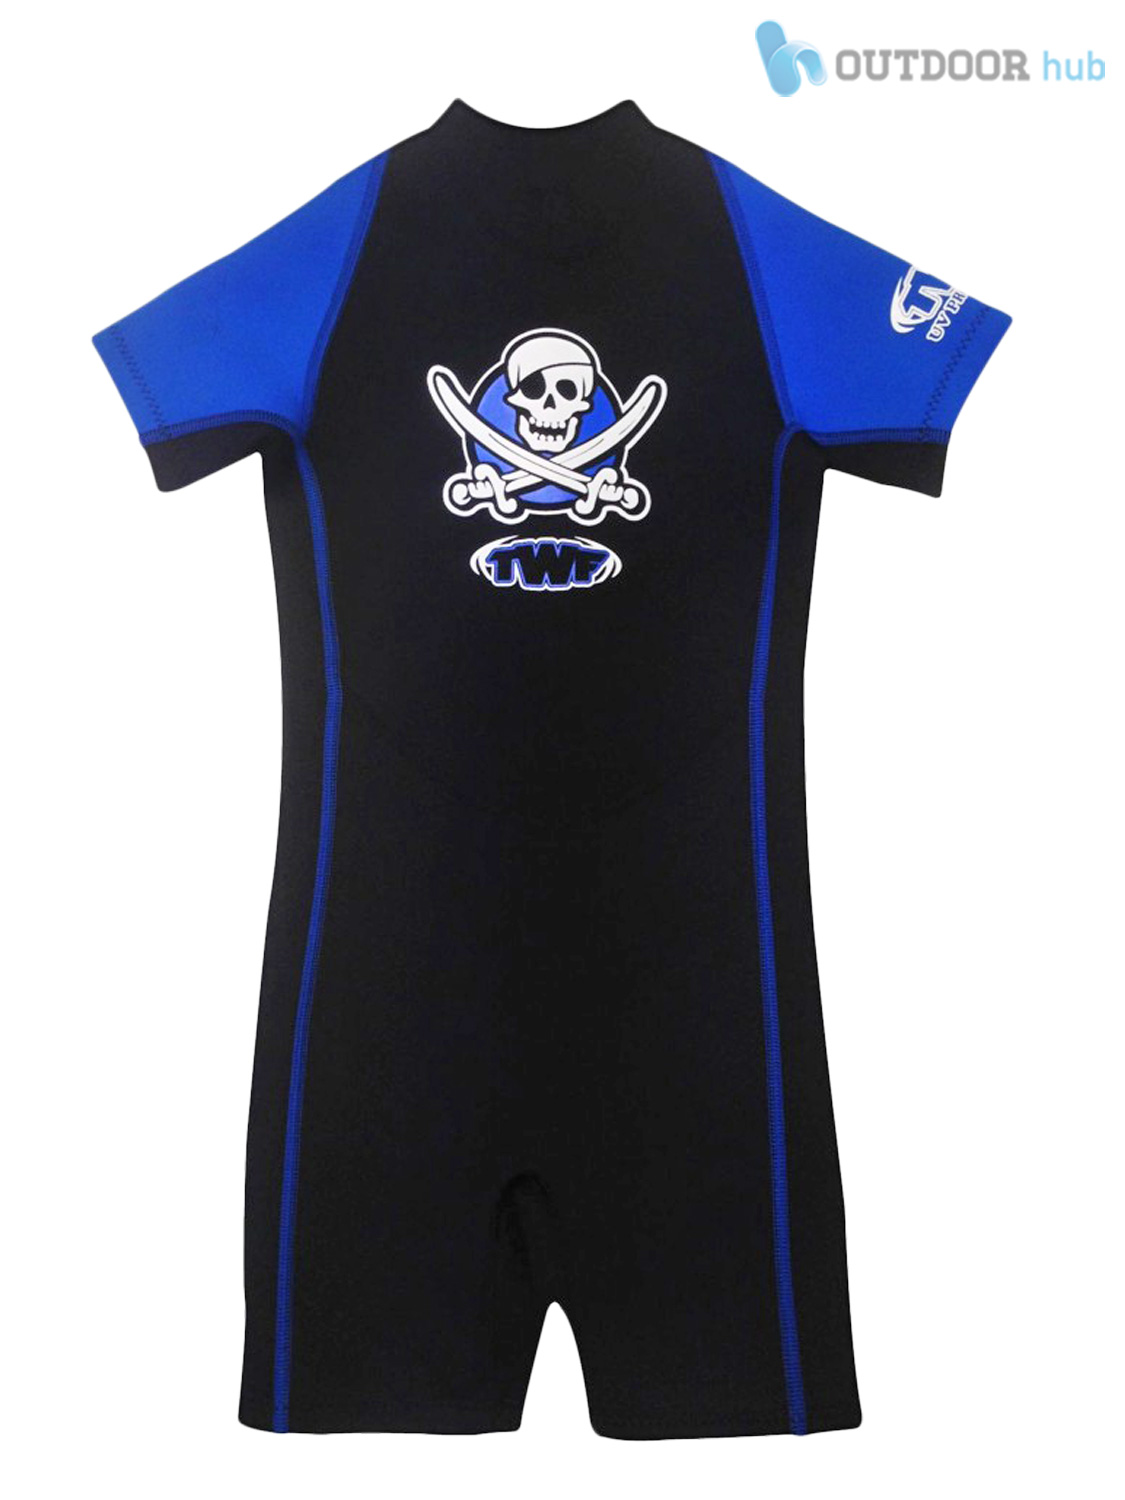 TWF-2mm-Kids-Shortie-Wetsuit-Childs-Shorty-Boys-Girls-Beach-Swim-Baby-Toddler thumbnail 6